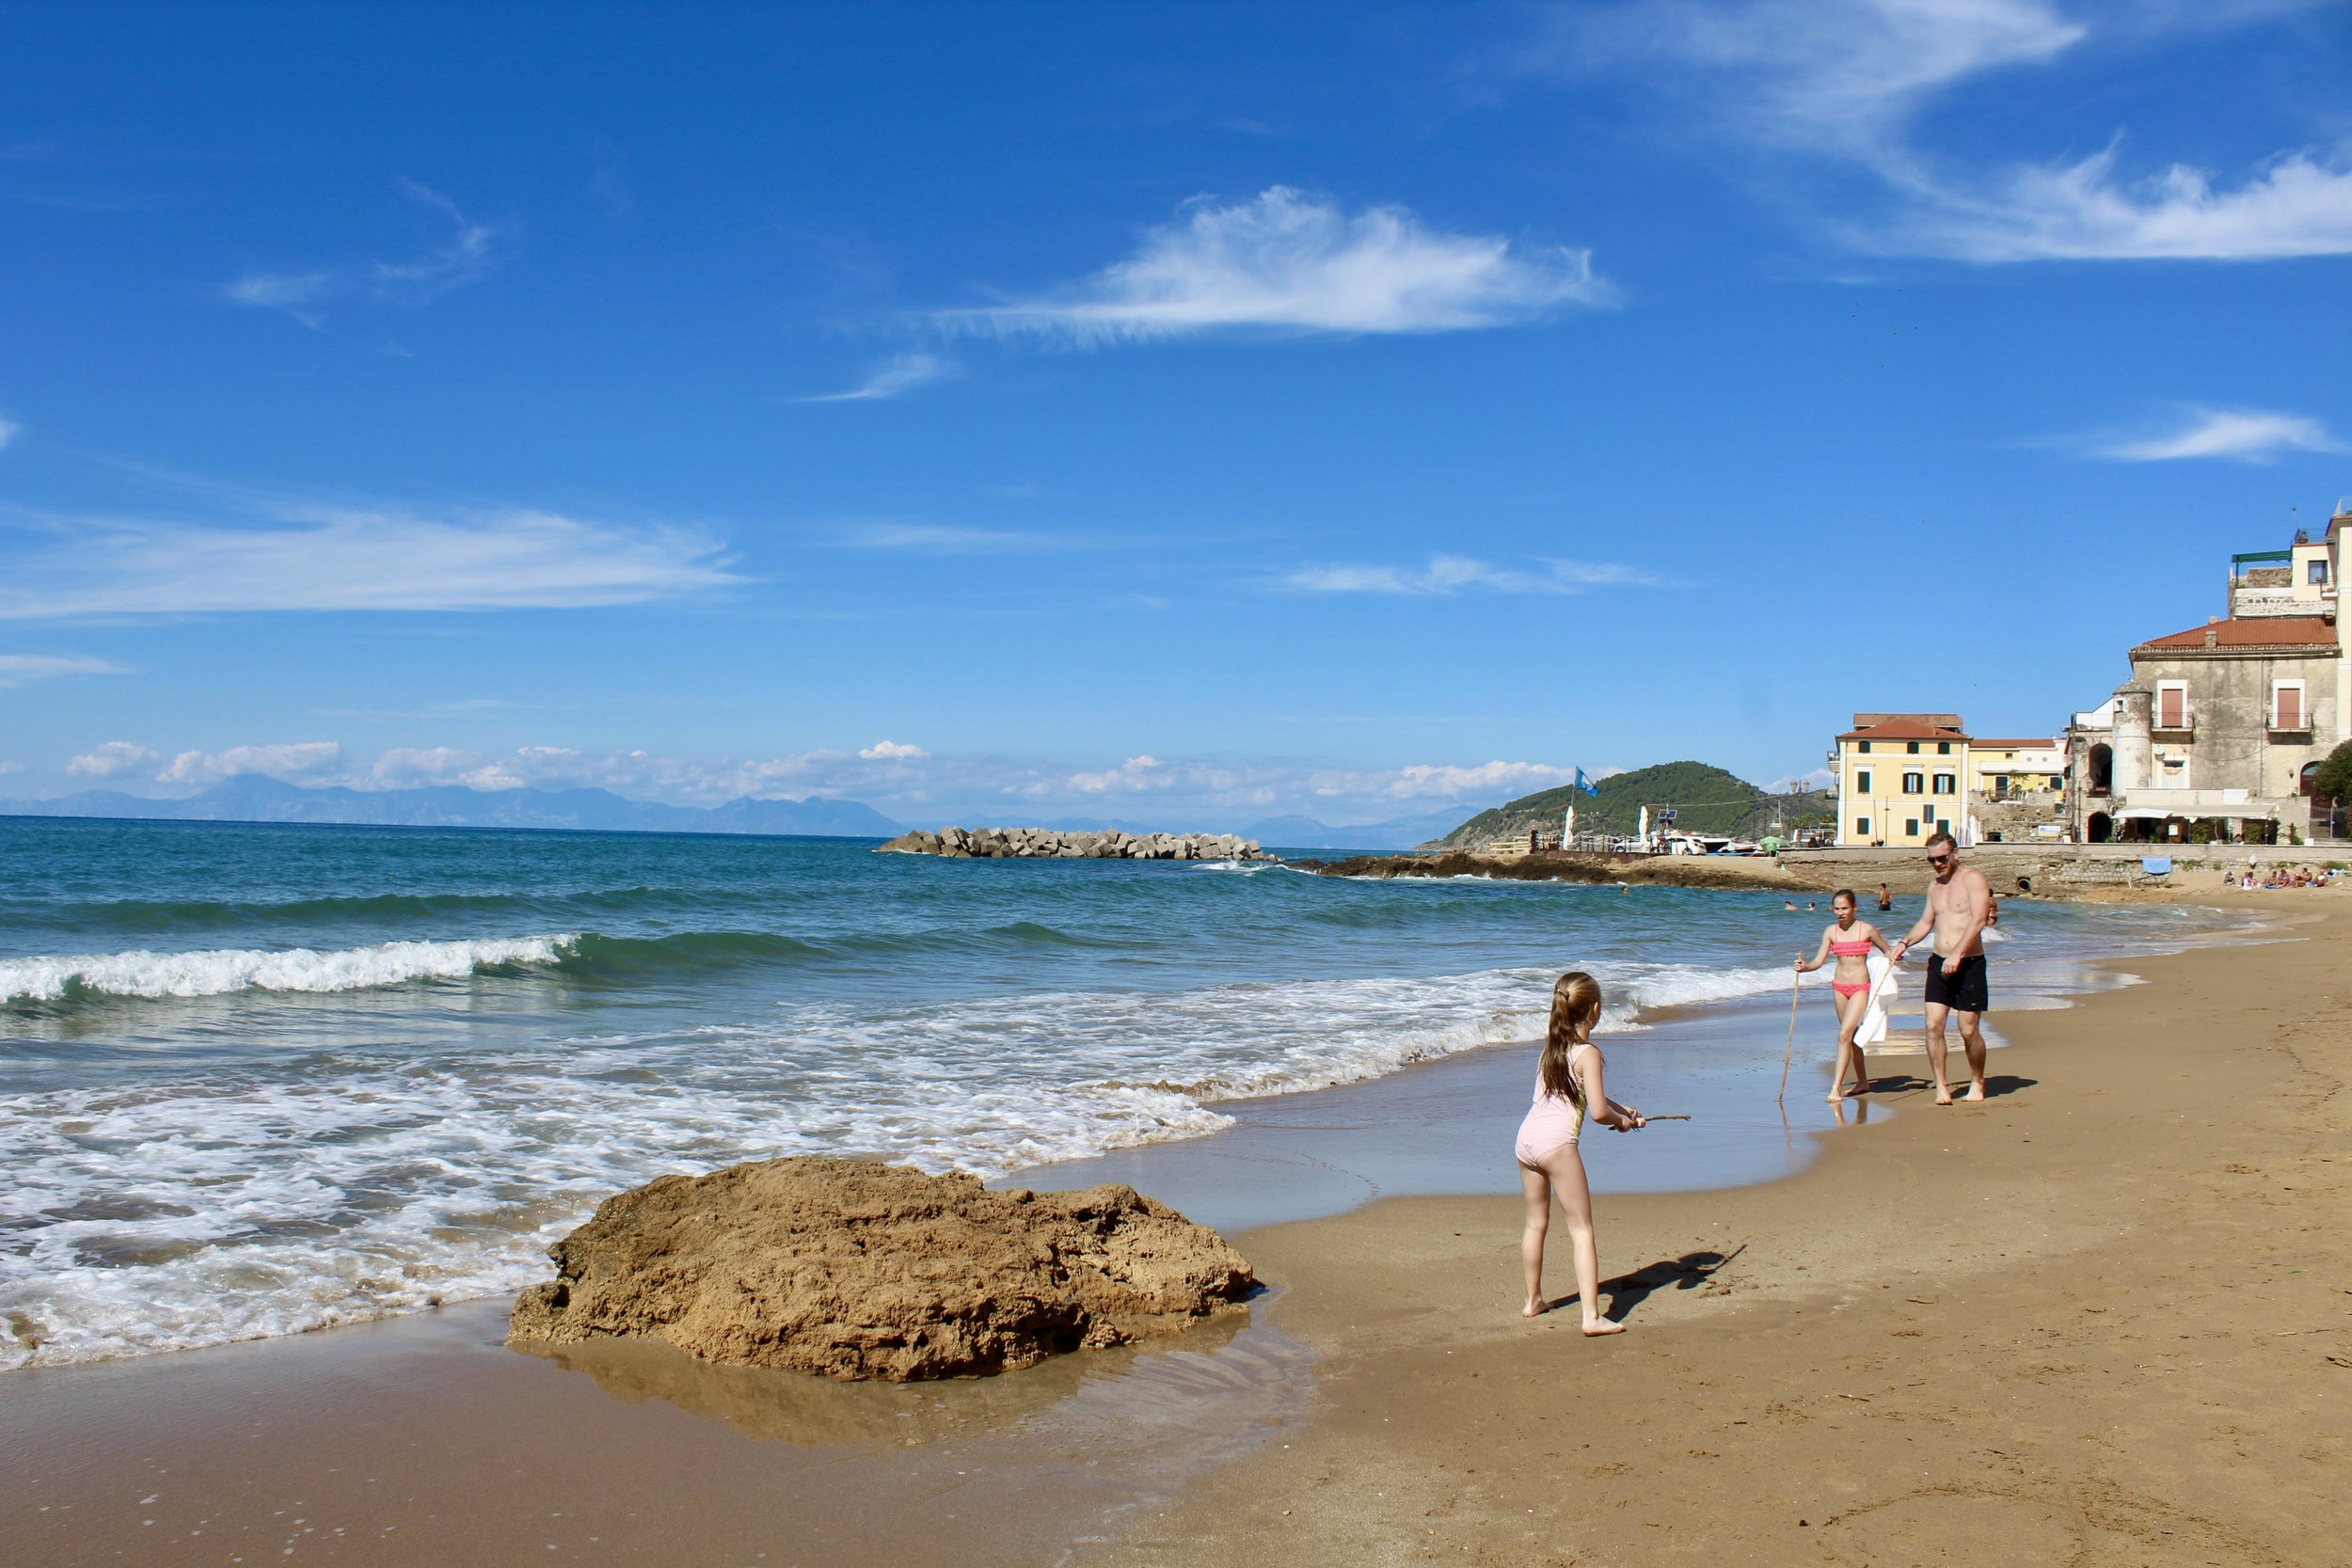 Beach at Castellabate, Cilento Coast